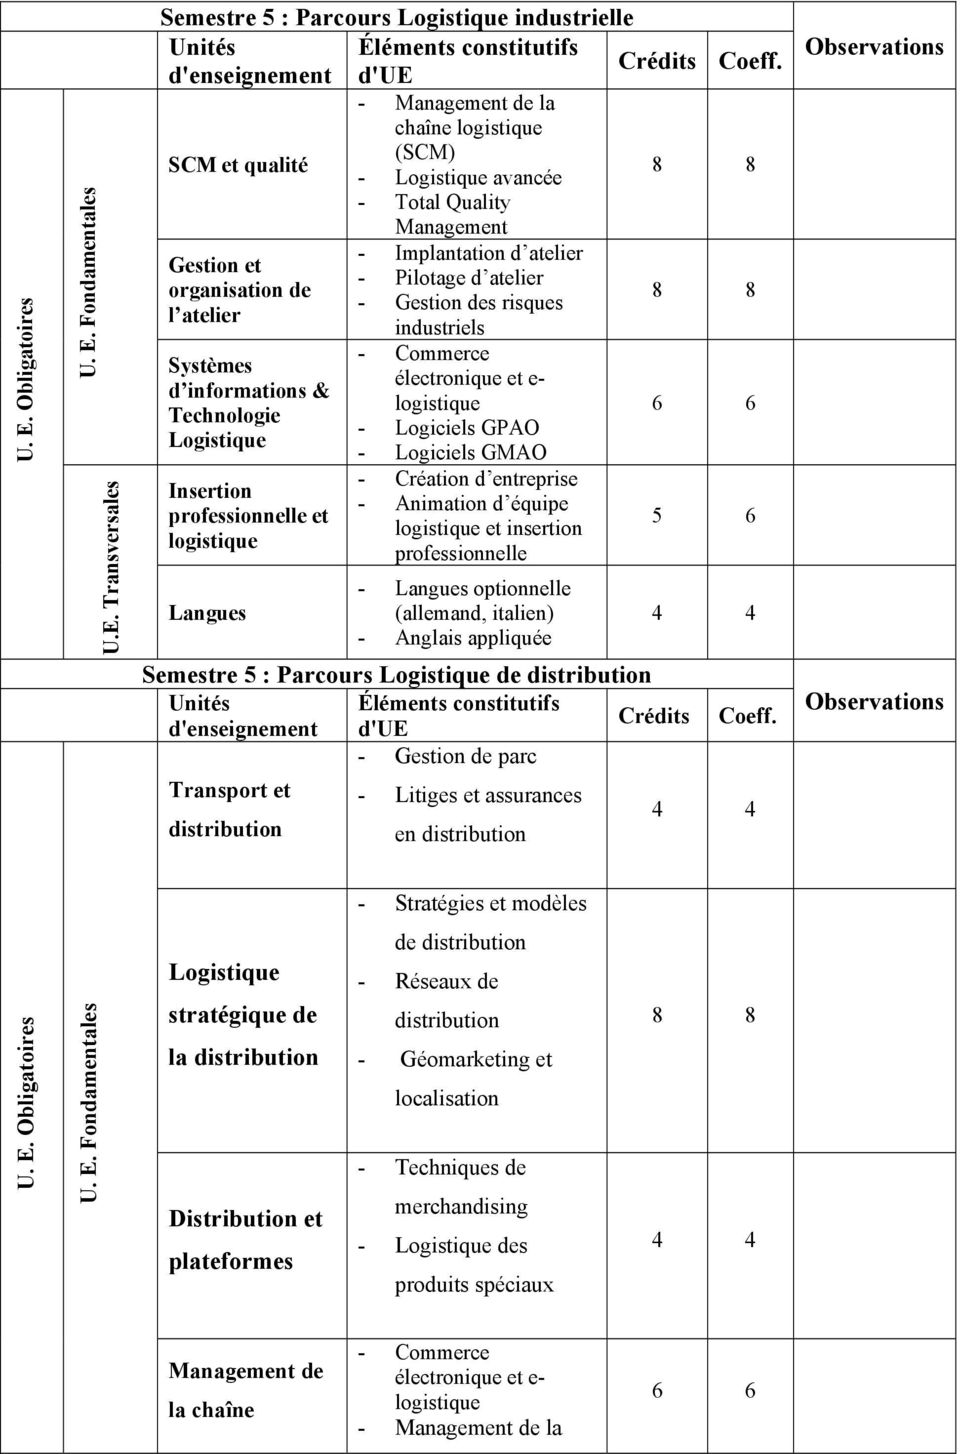 Langues optionnelle - Anglais appliquée 5 6 Semestre 5 : Parcours de distribution Éléments constitutifs d'ue - Gestion de parc Transport et - Litiges et assurances distribution en distribution -